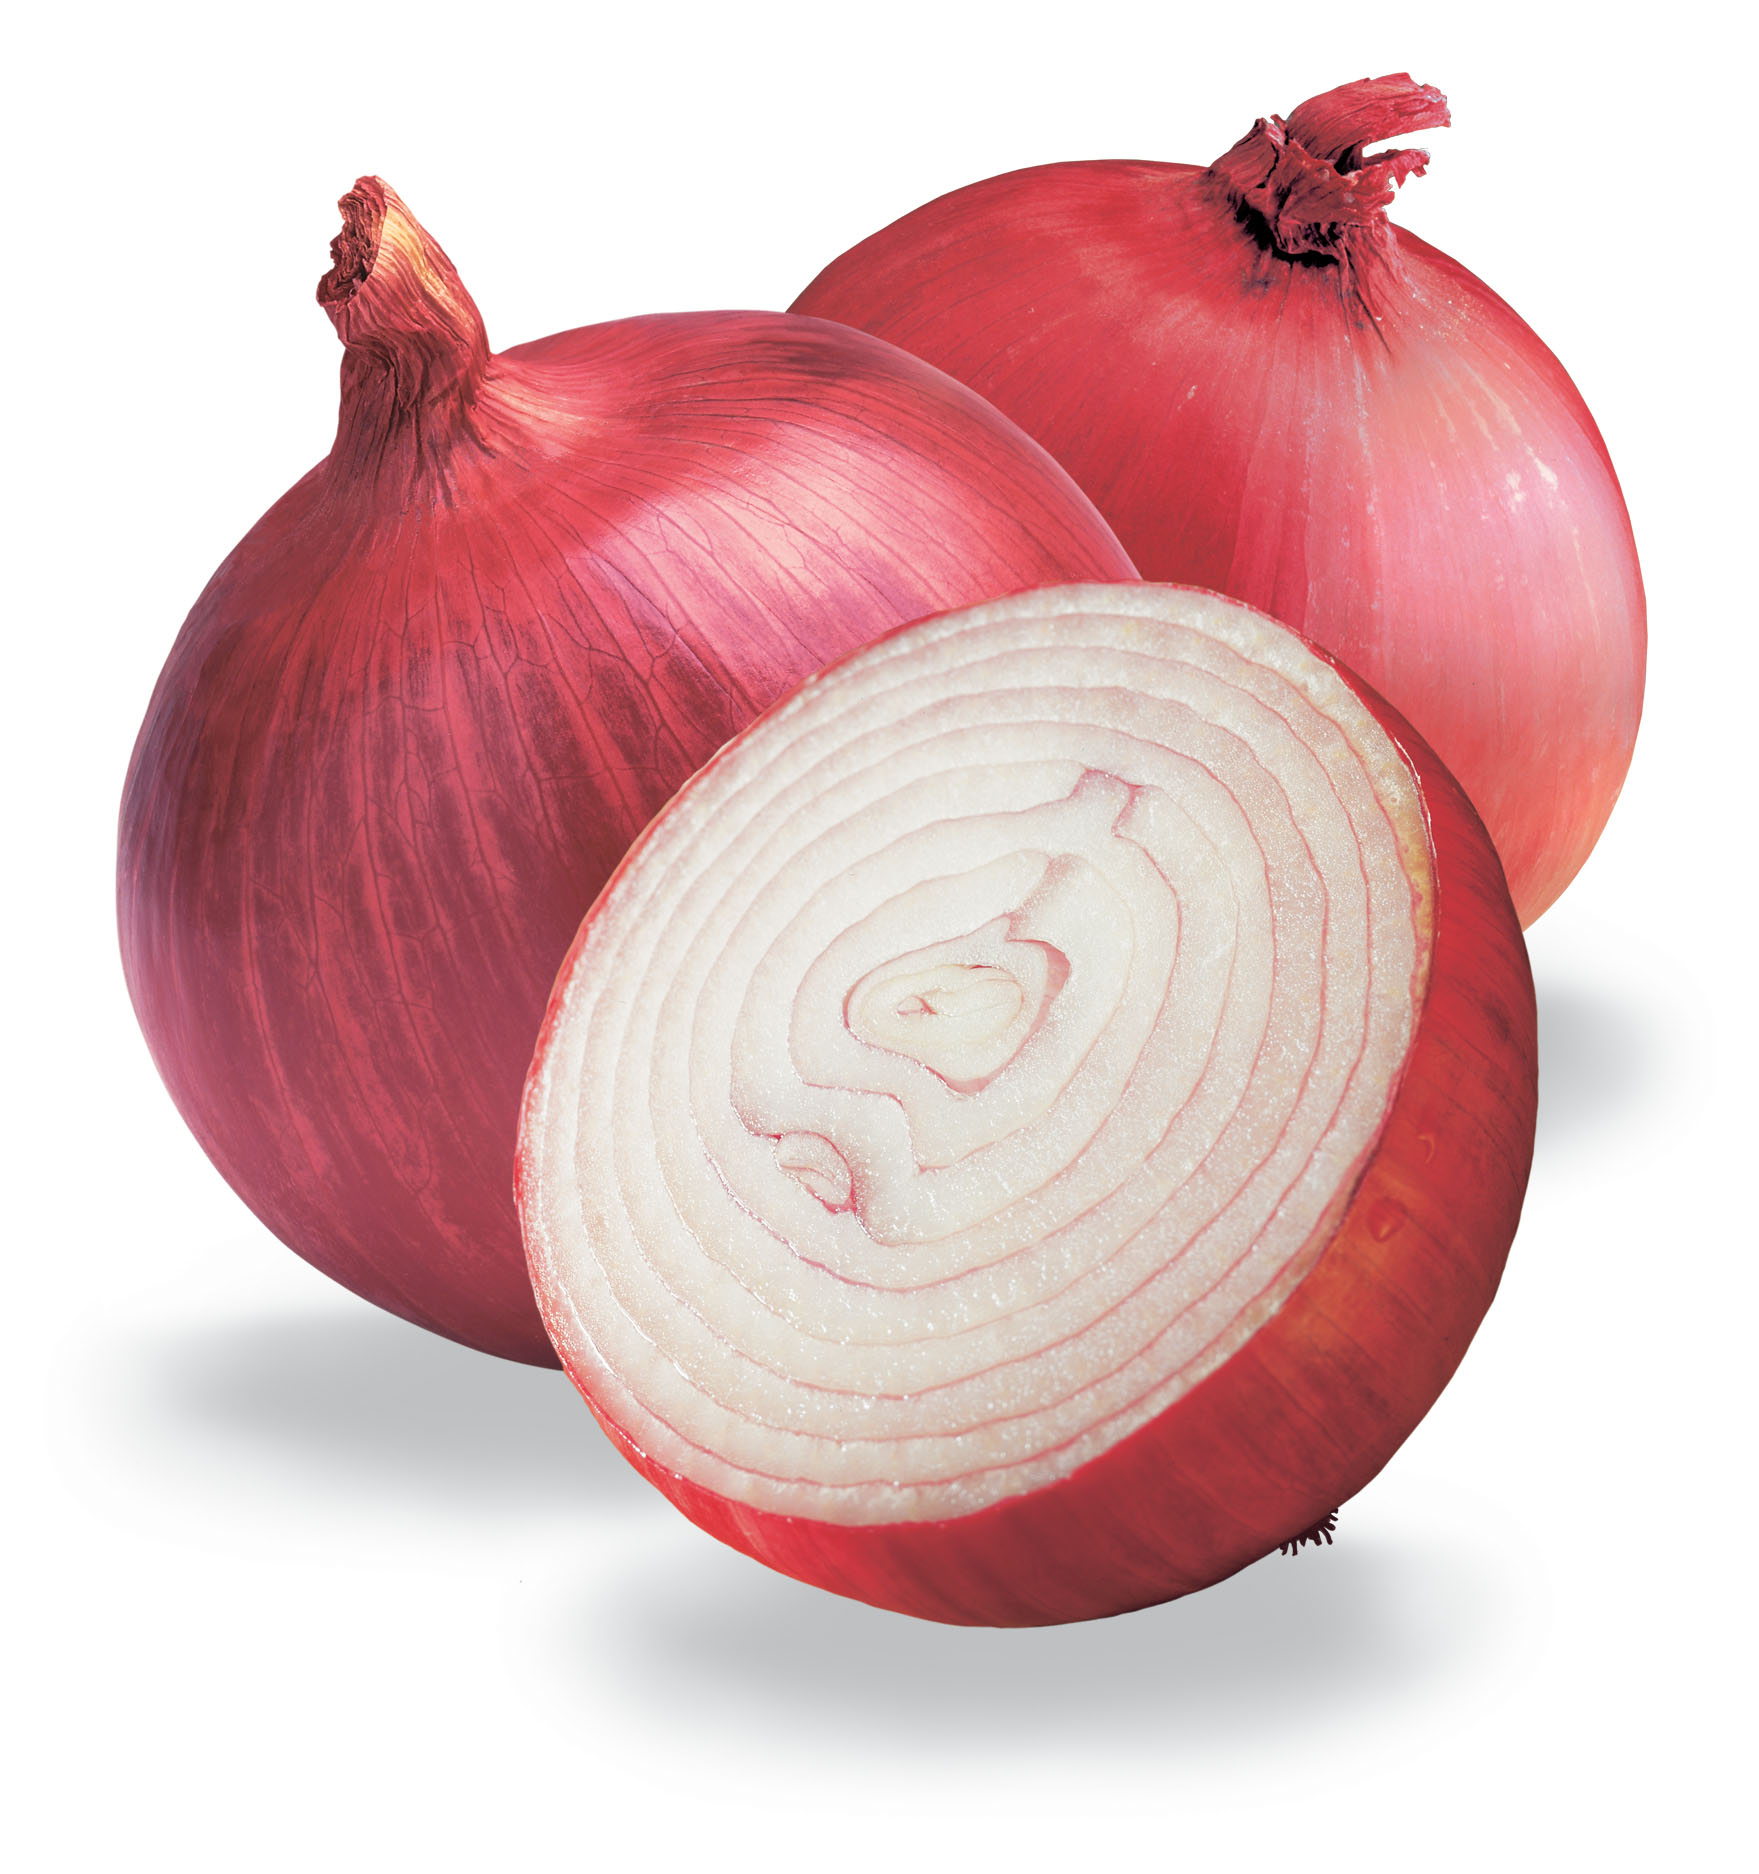 Raw Onion in Section